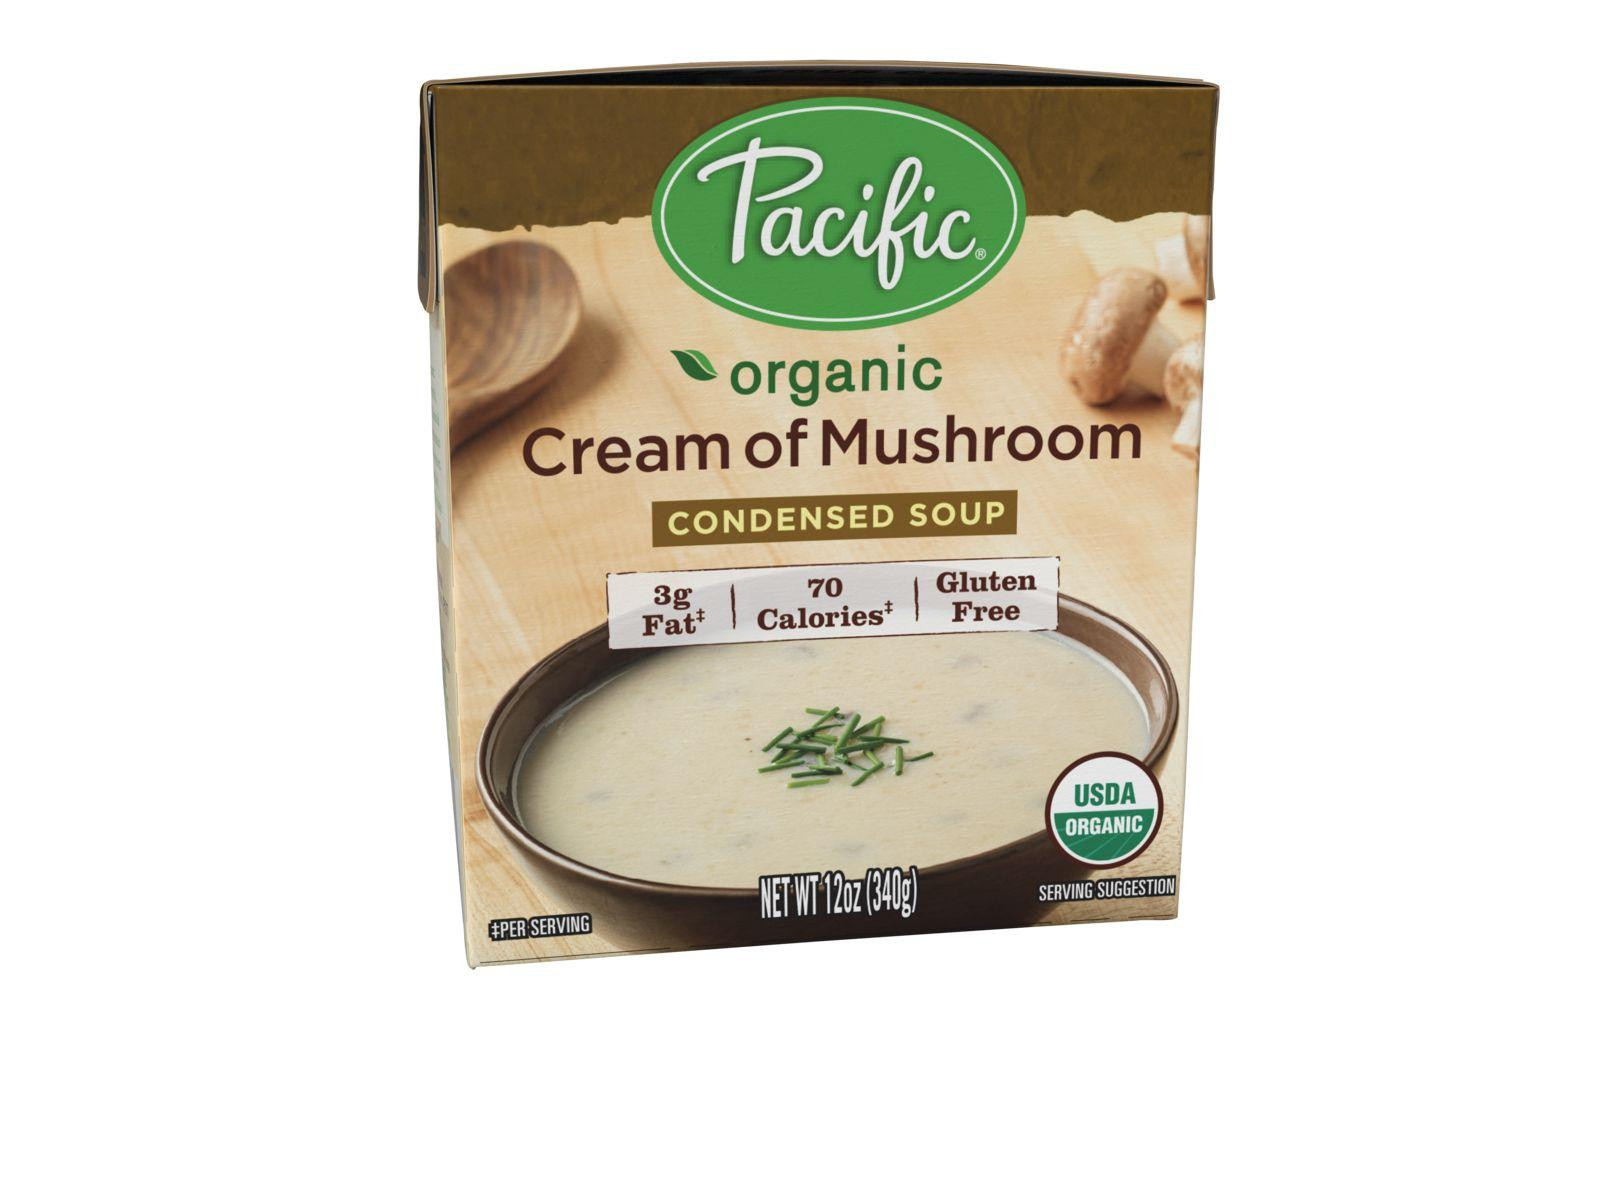 Amazon.com : Pacific Foods Organic Cream of Mushroom Condensed Soup ...